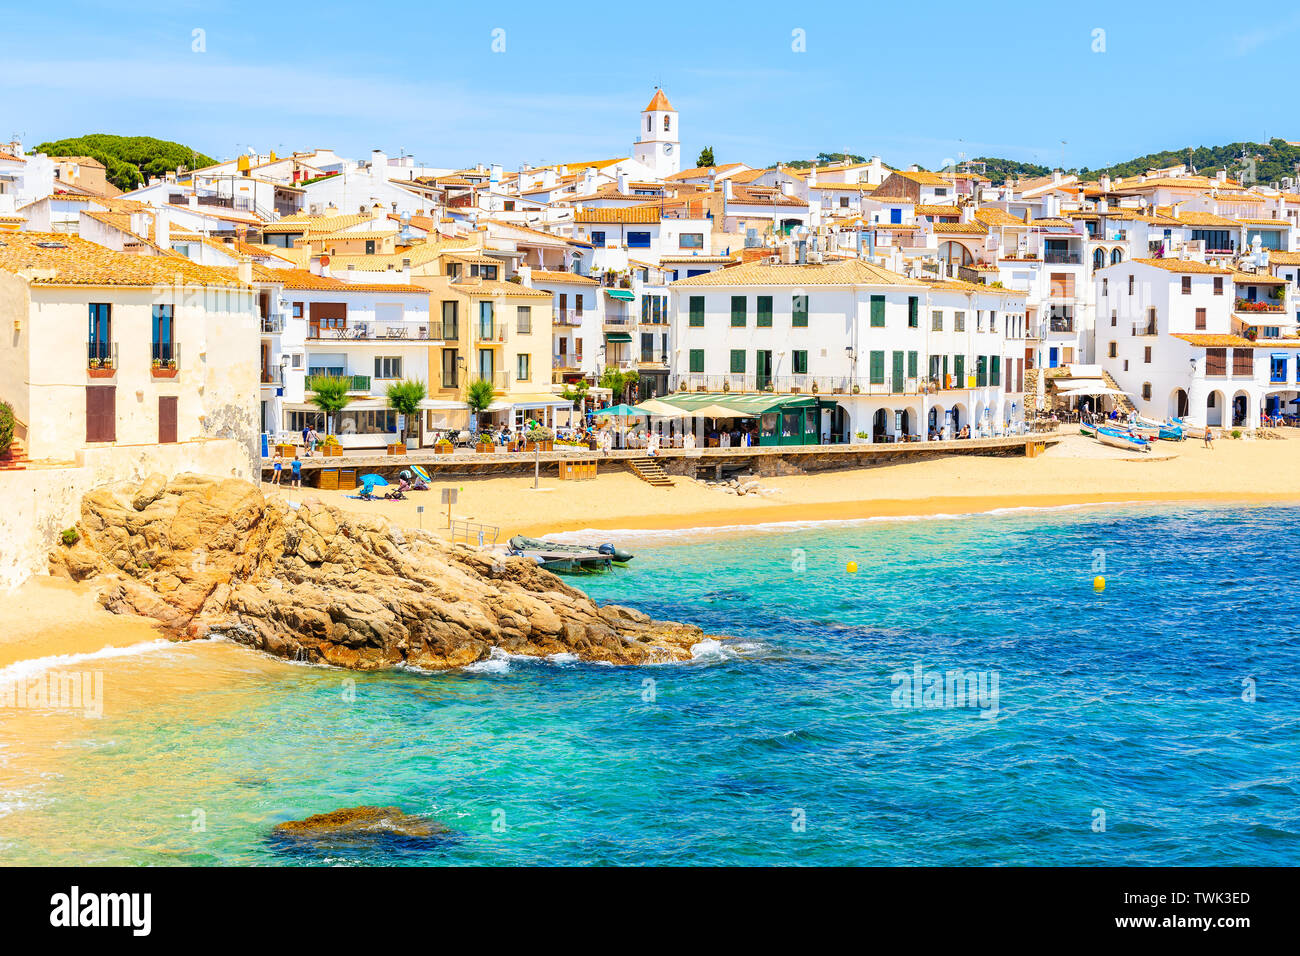 Amazing beach in Calella de Palafrugell, scenic fishing village with white houses and sandy beach with clear blue water, Costa Brava, Catalonia, Spain Stock Photo